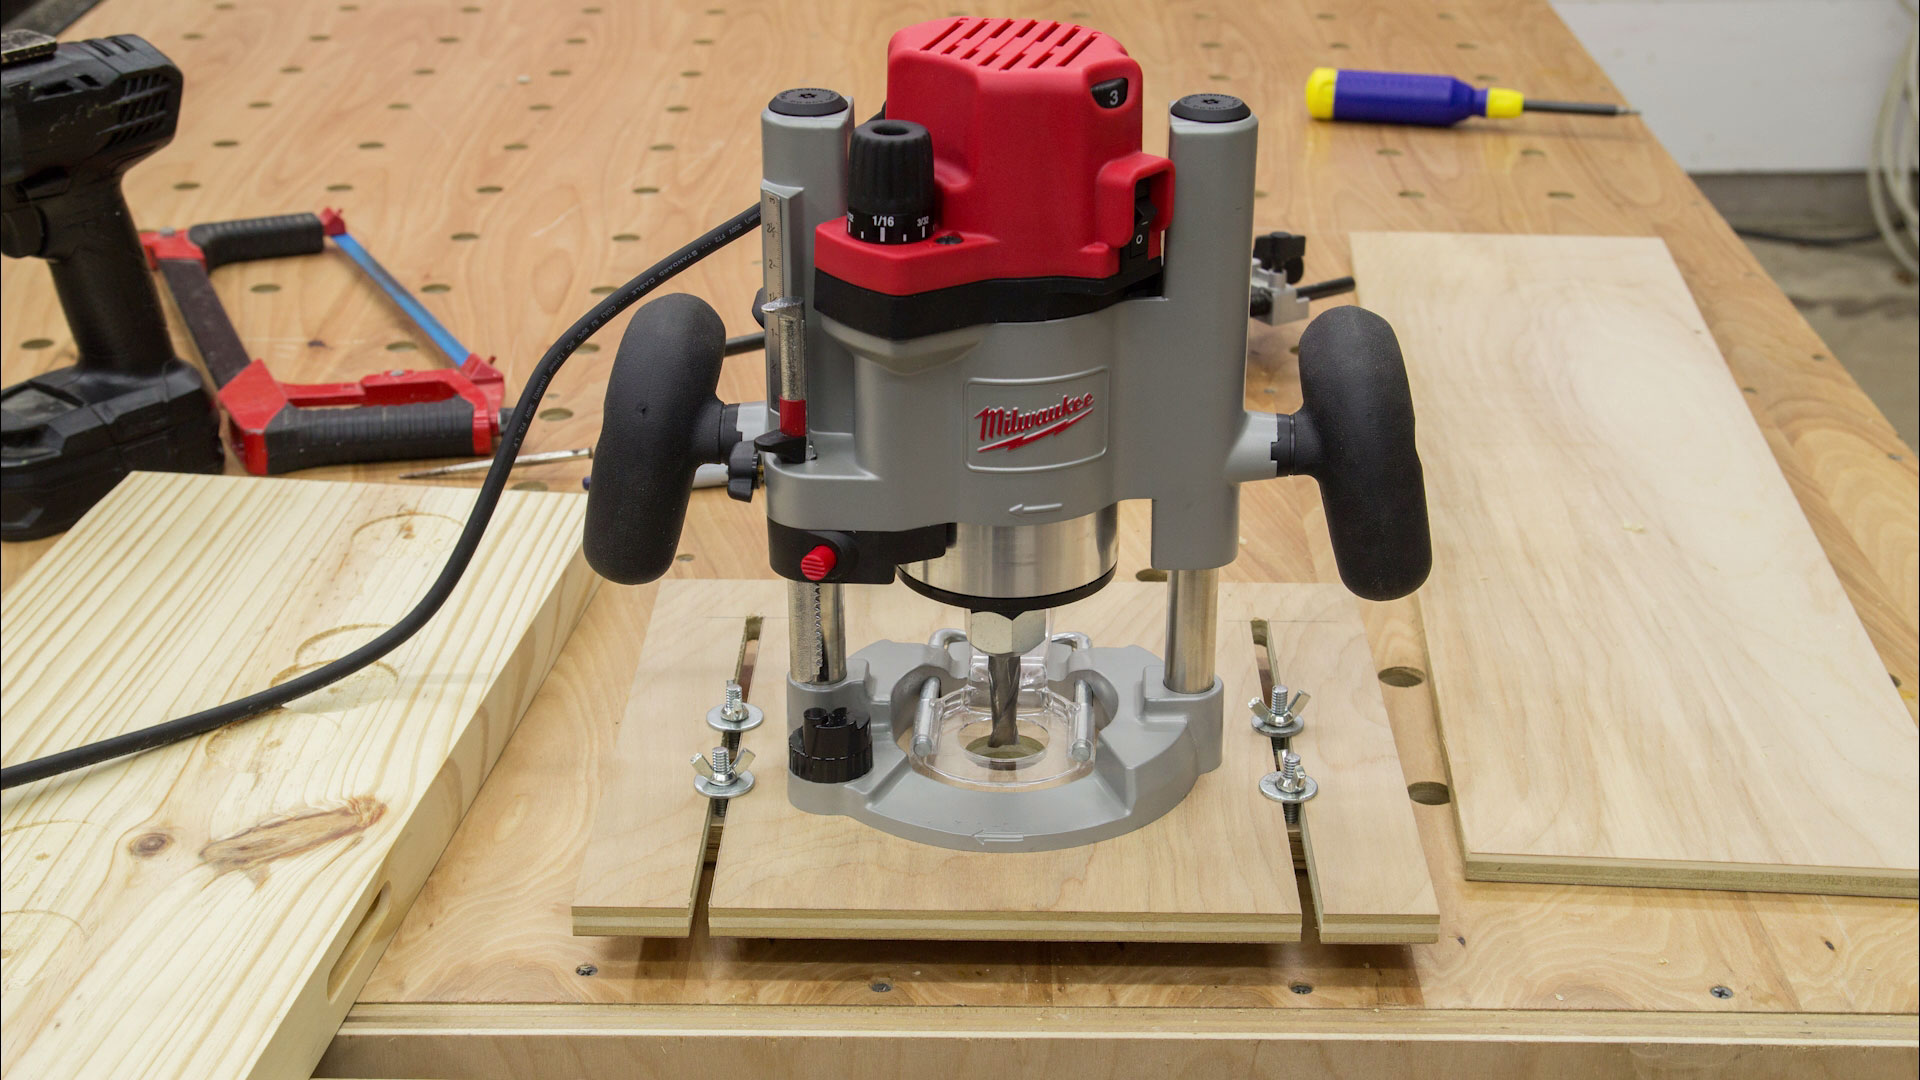 77 Universal Router Edge Guide And Mortise Jig Bosch